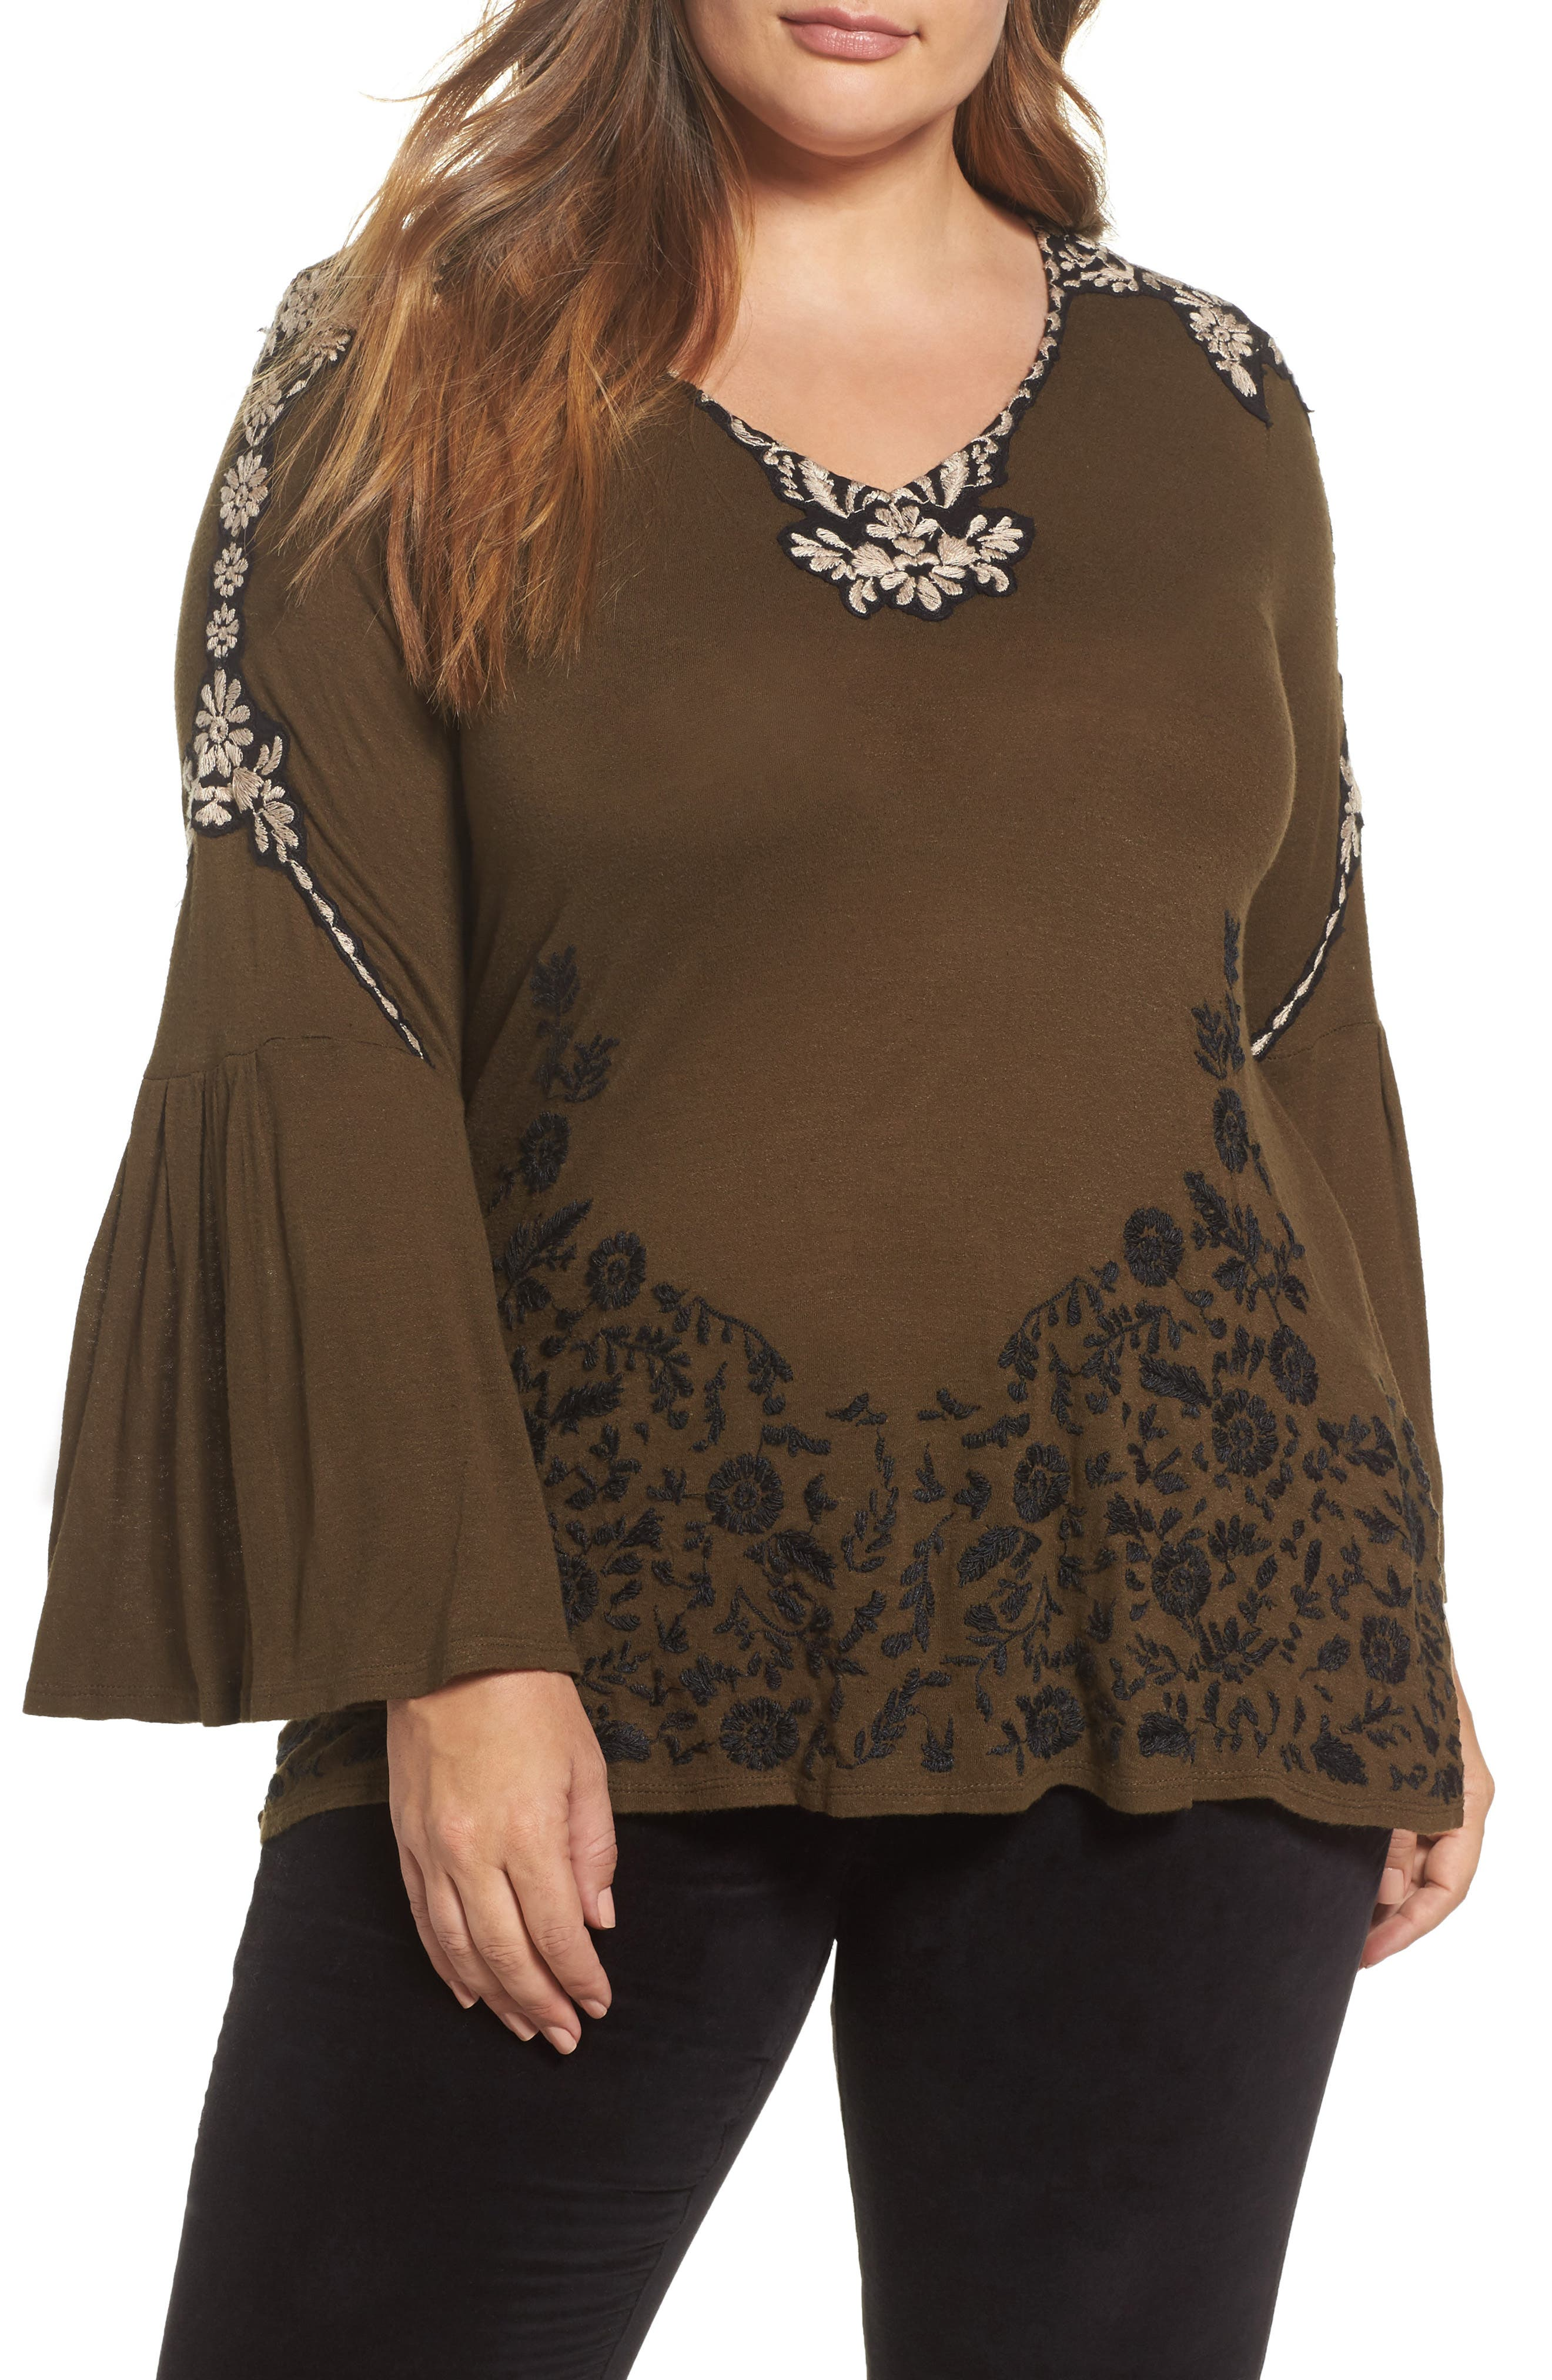 Main Image - Lucky Brand Embroidered Bell Sleeve Top (Plus Size)